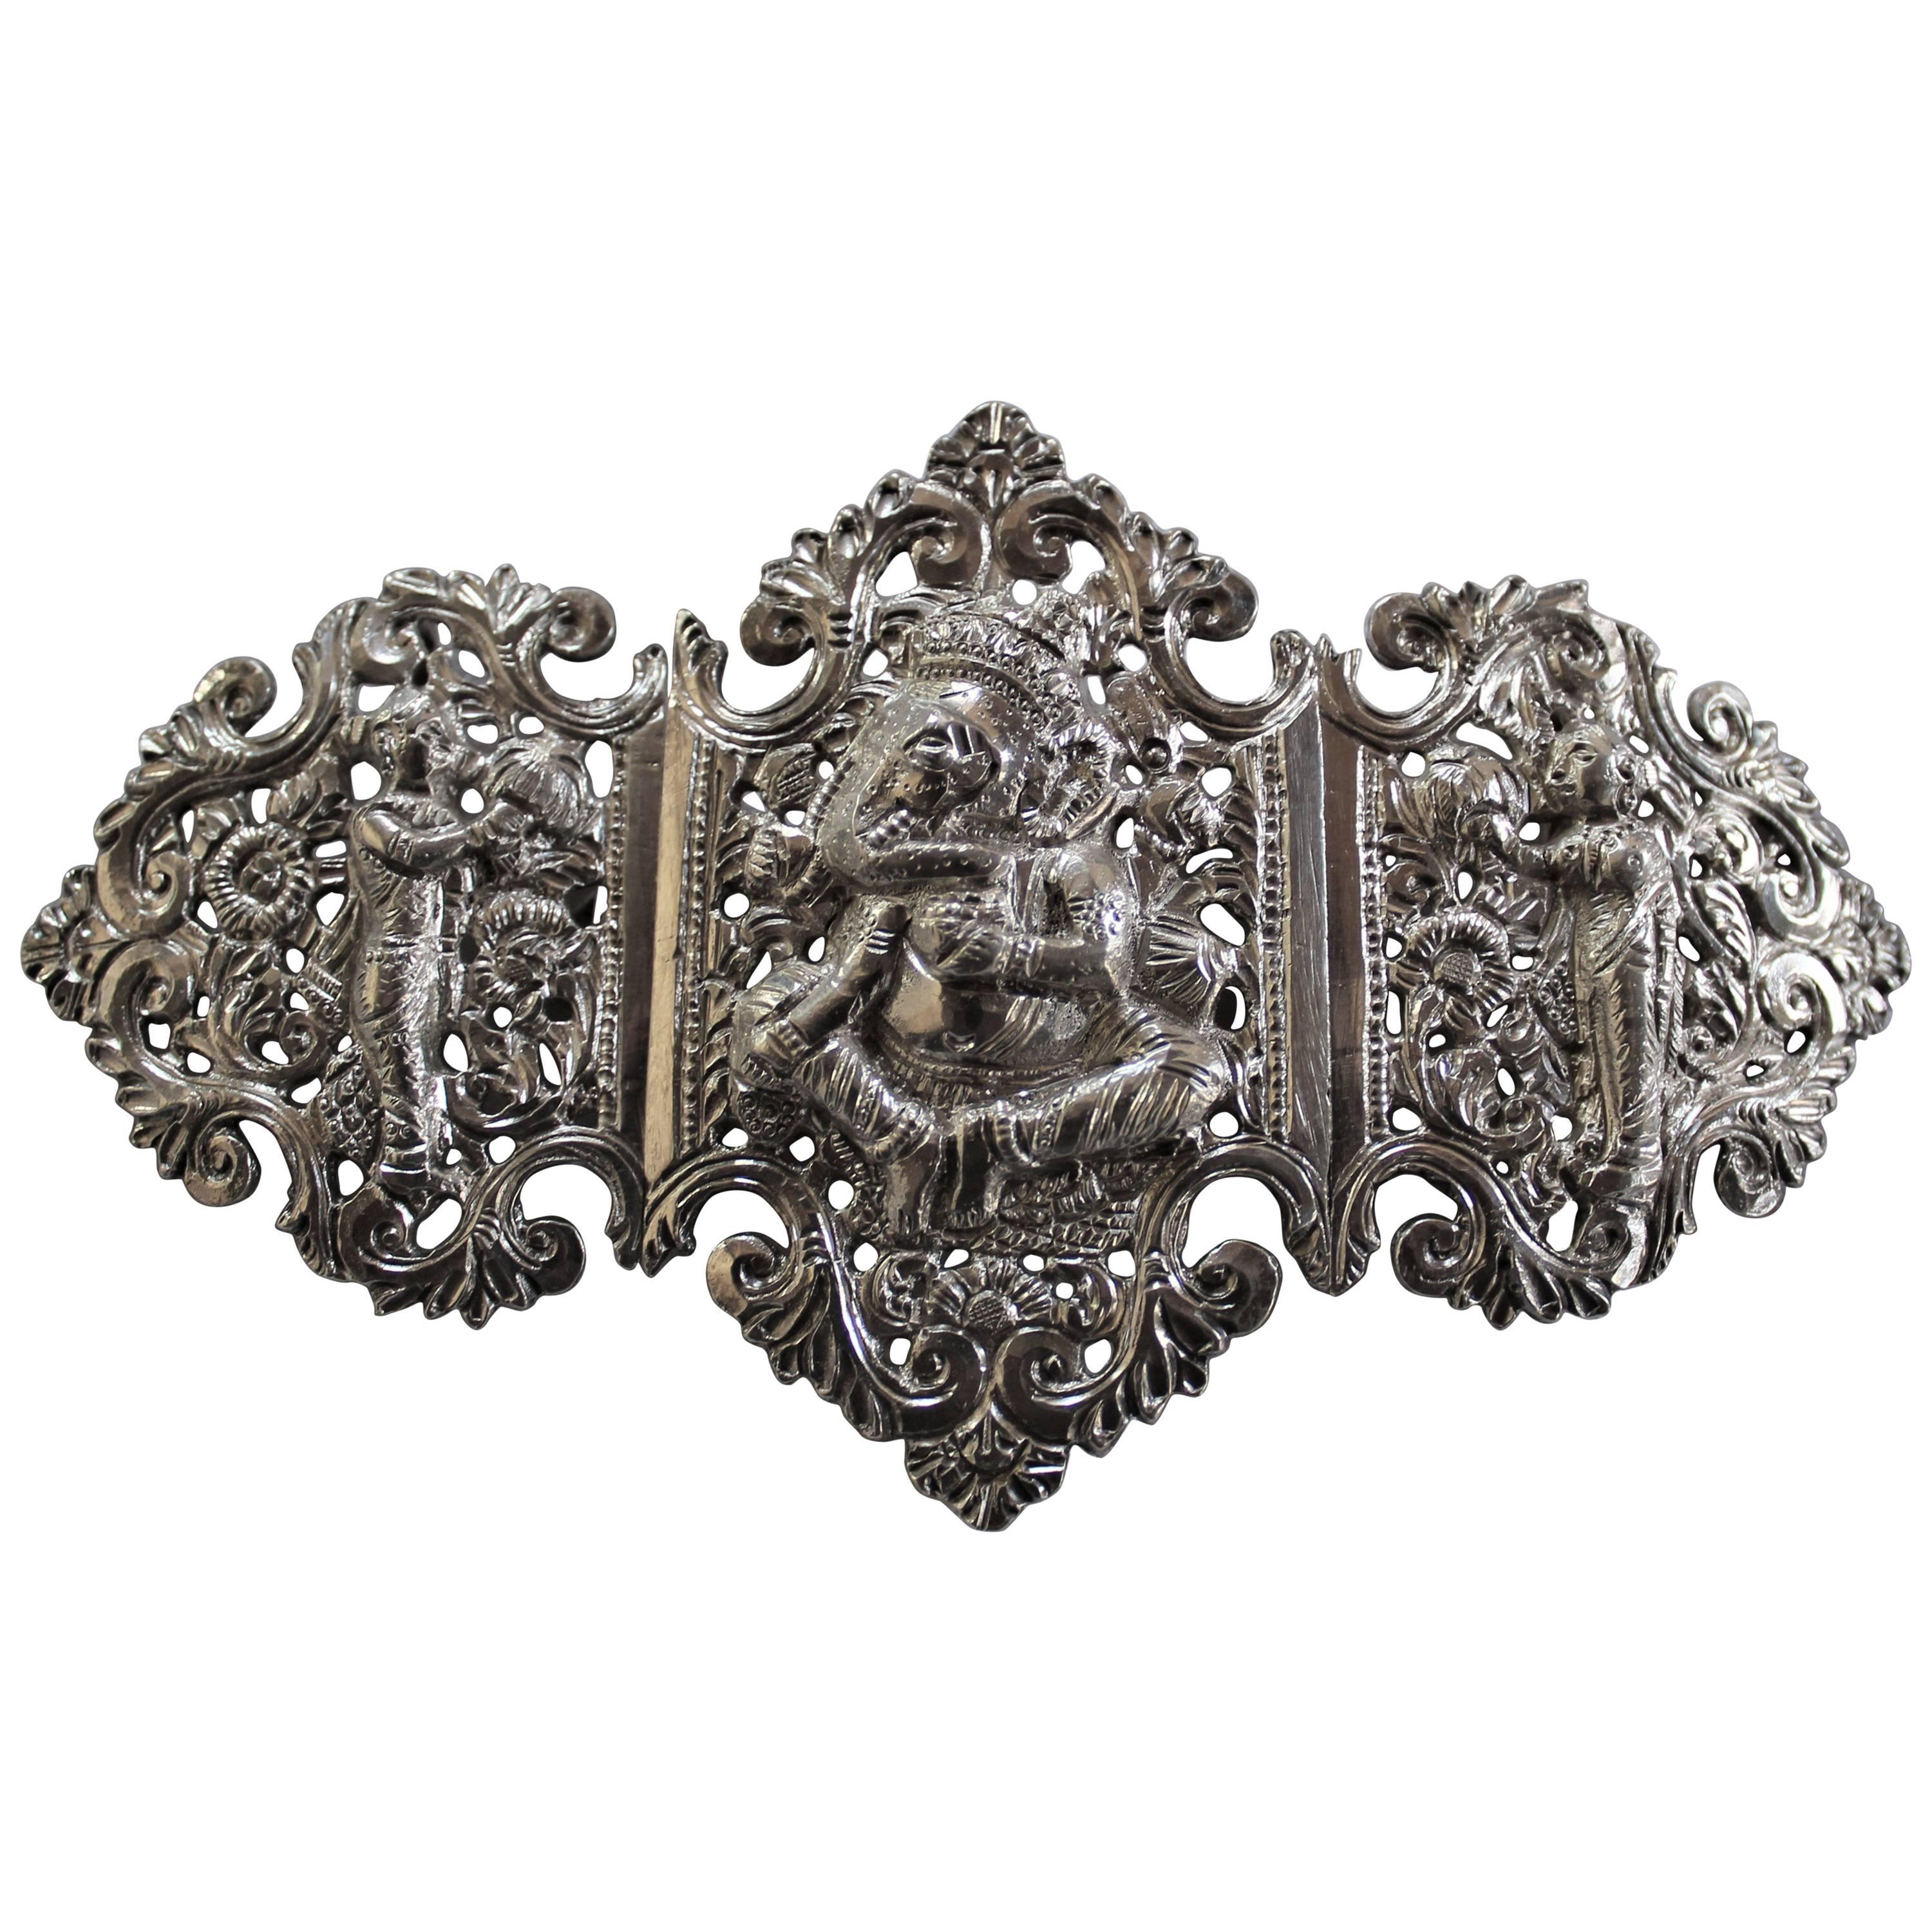 Anglo-Indian Silver Belt Buckle with Red and Black Belts